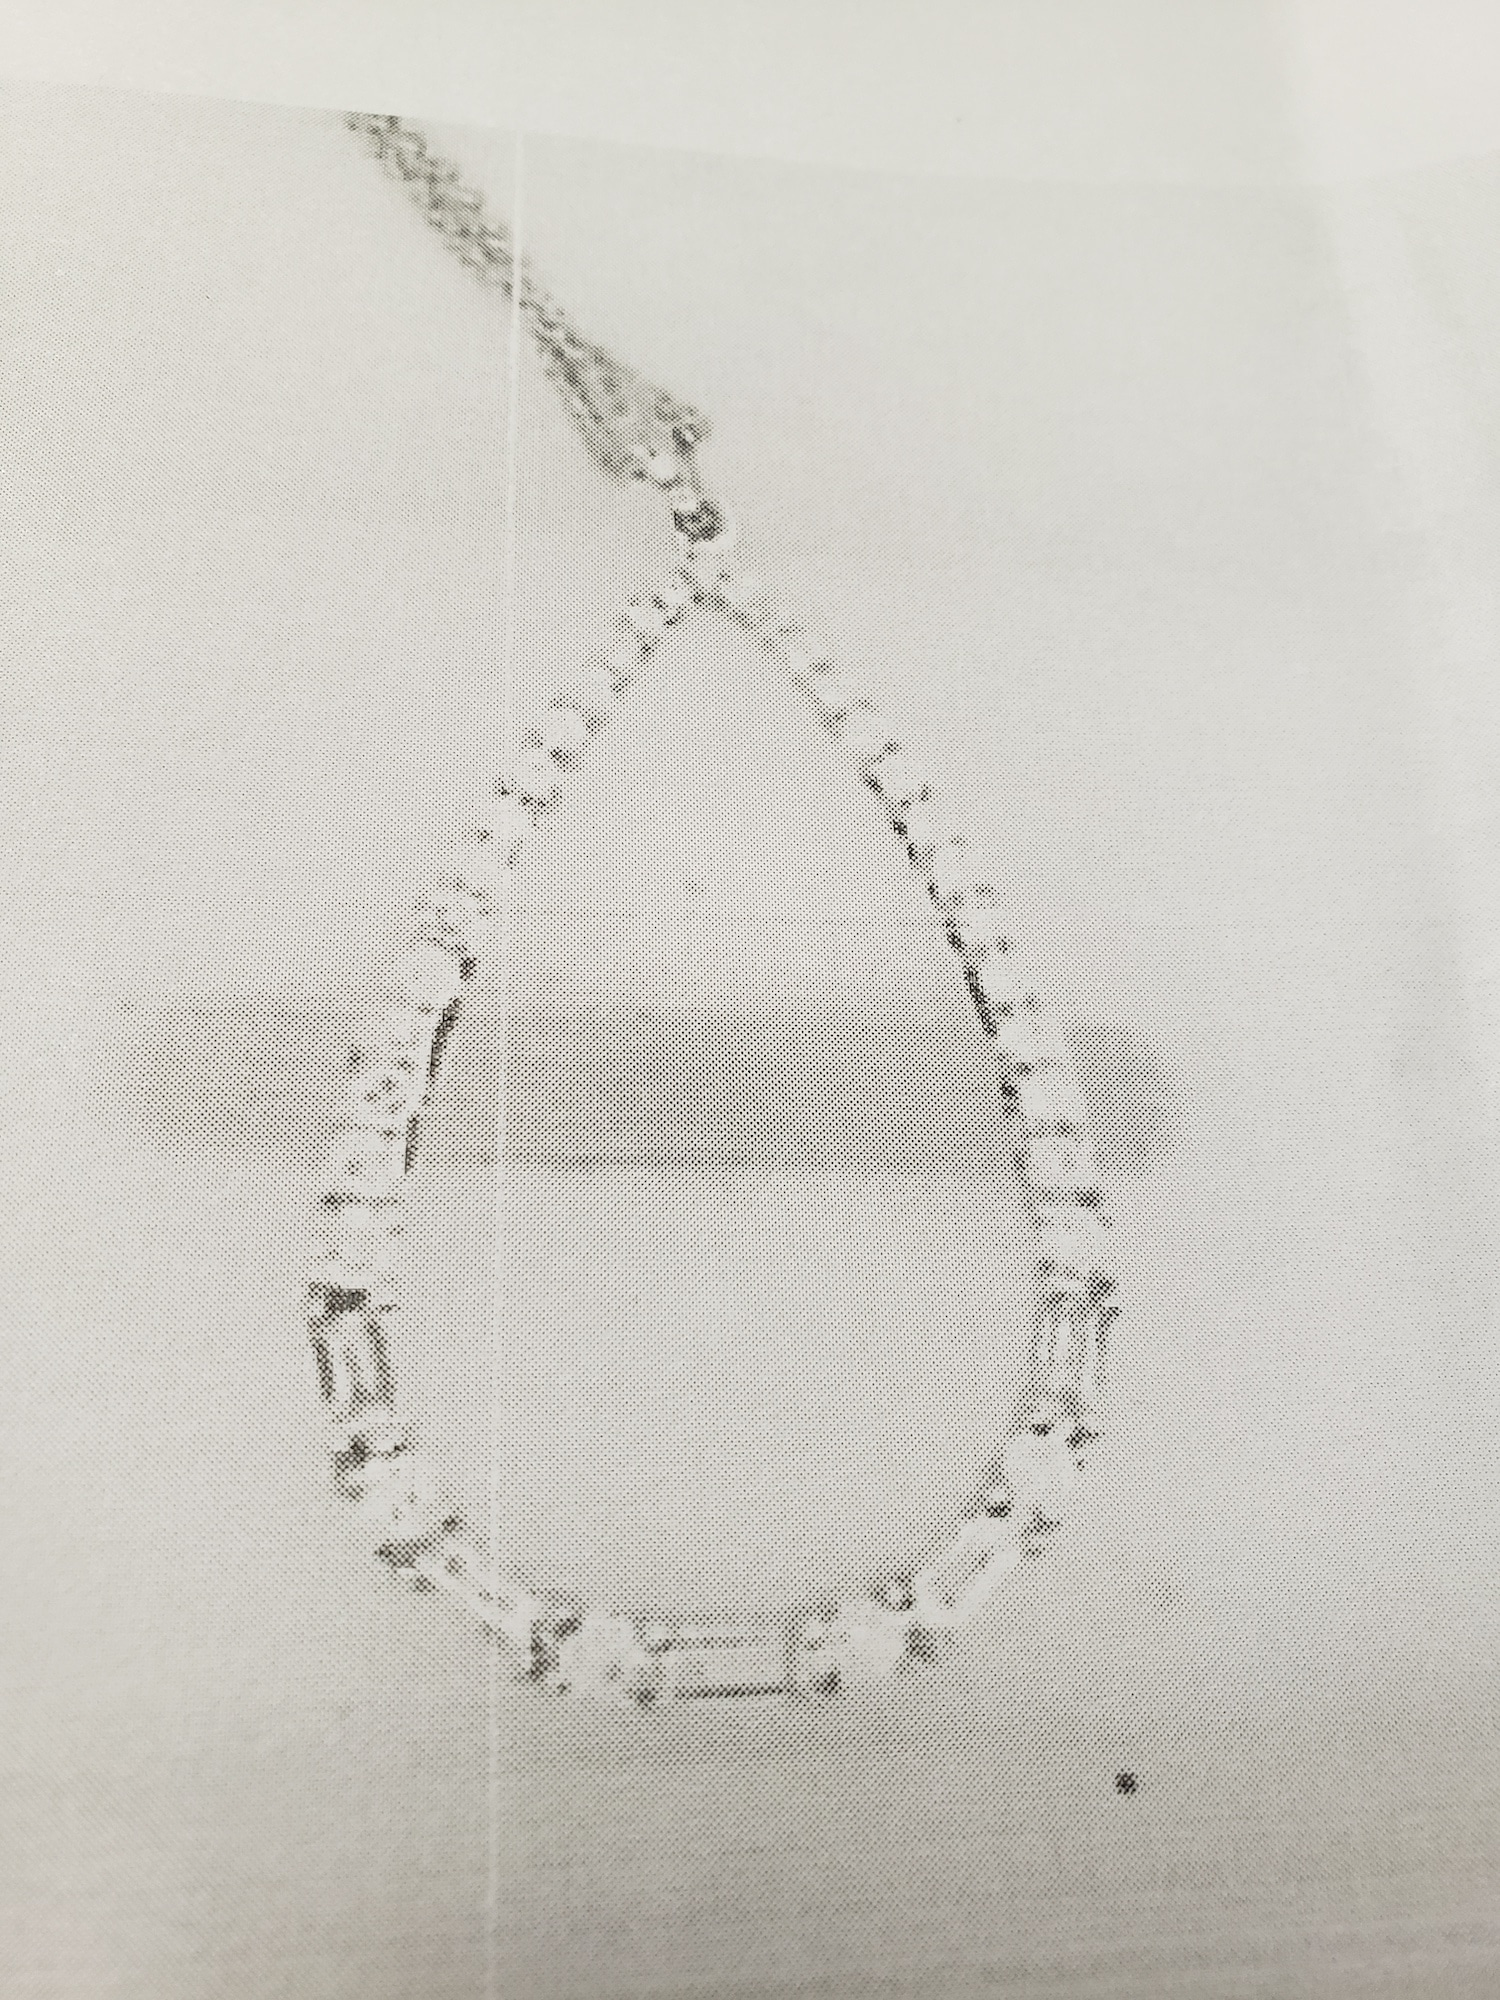 Crime Stoppers seeks information in jewelry larceny from local hotel room